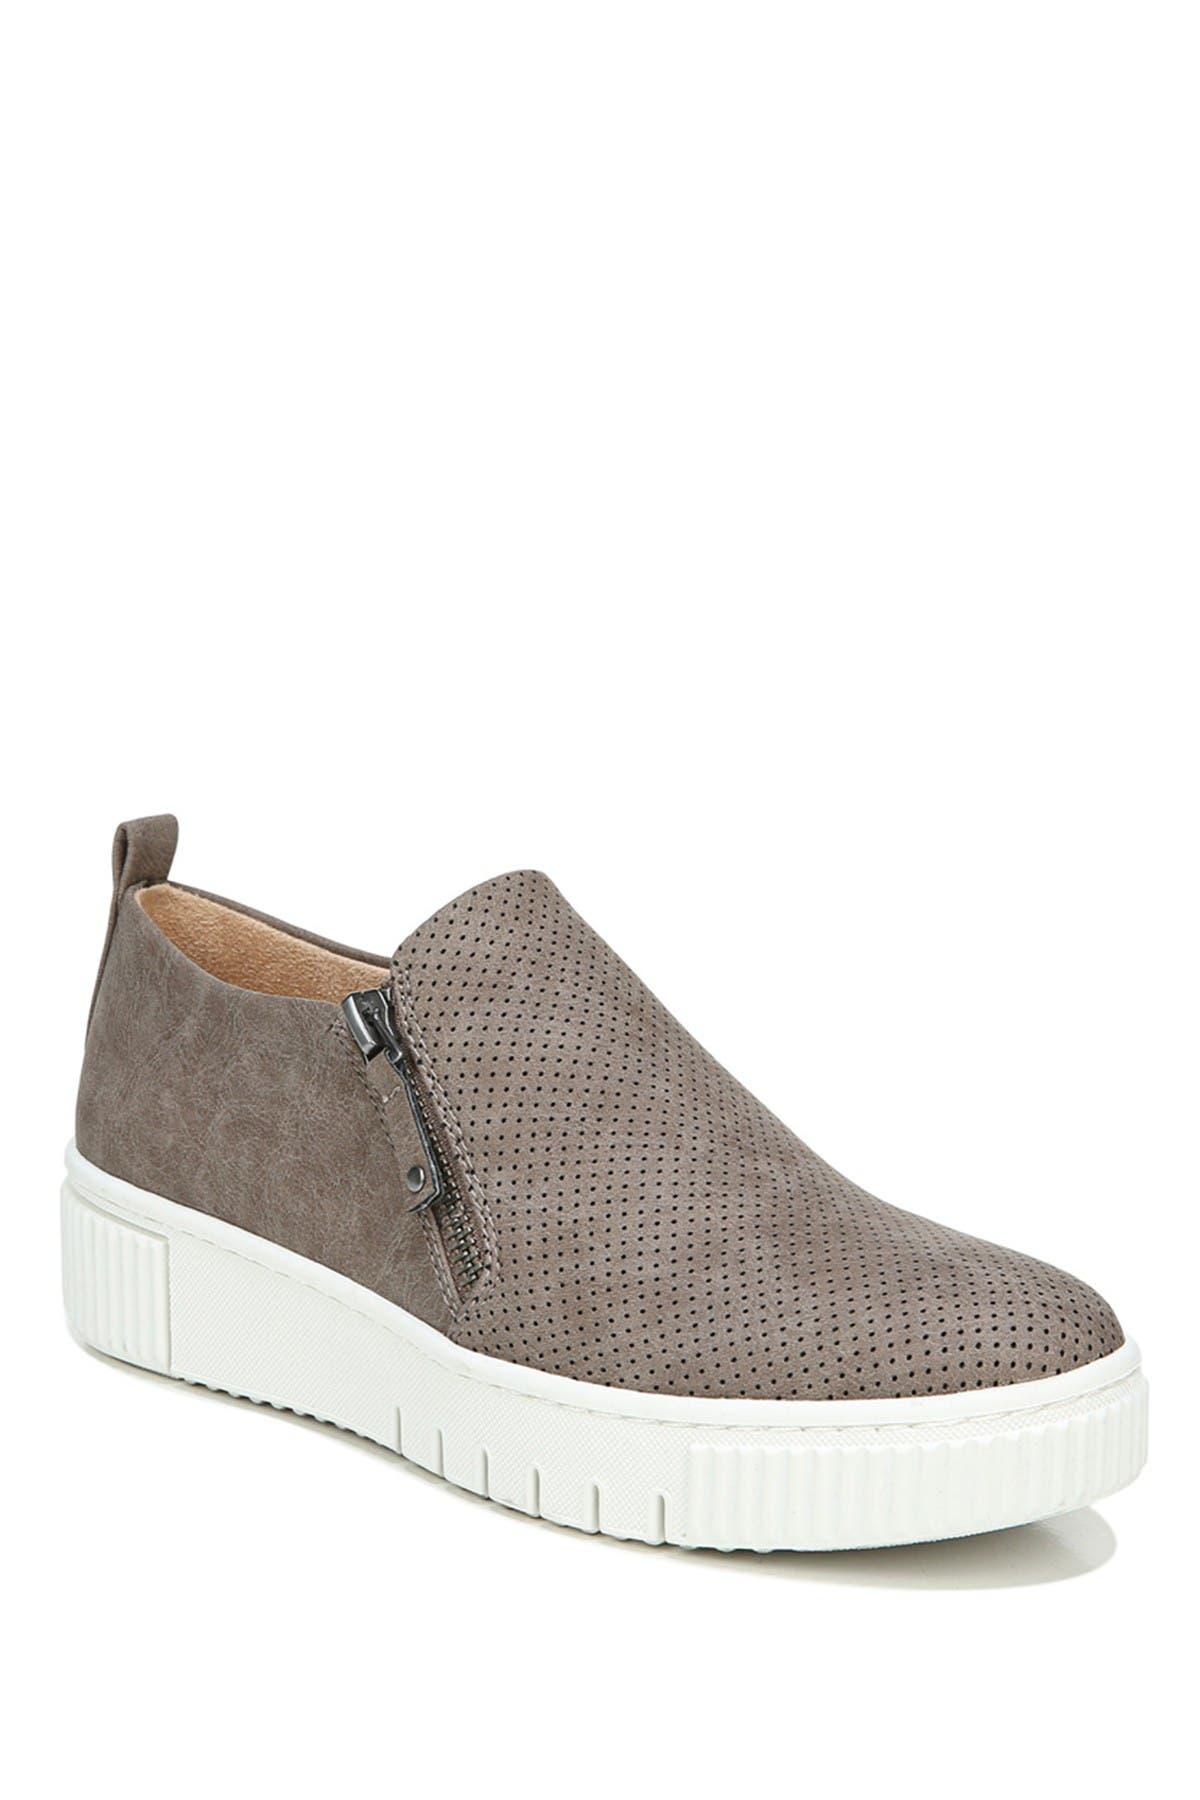 Image of SOUL Naturalizer Turner Perforated Sneaker